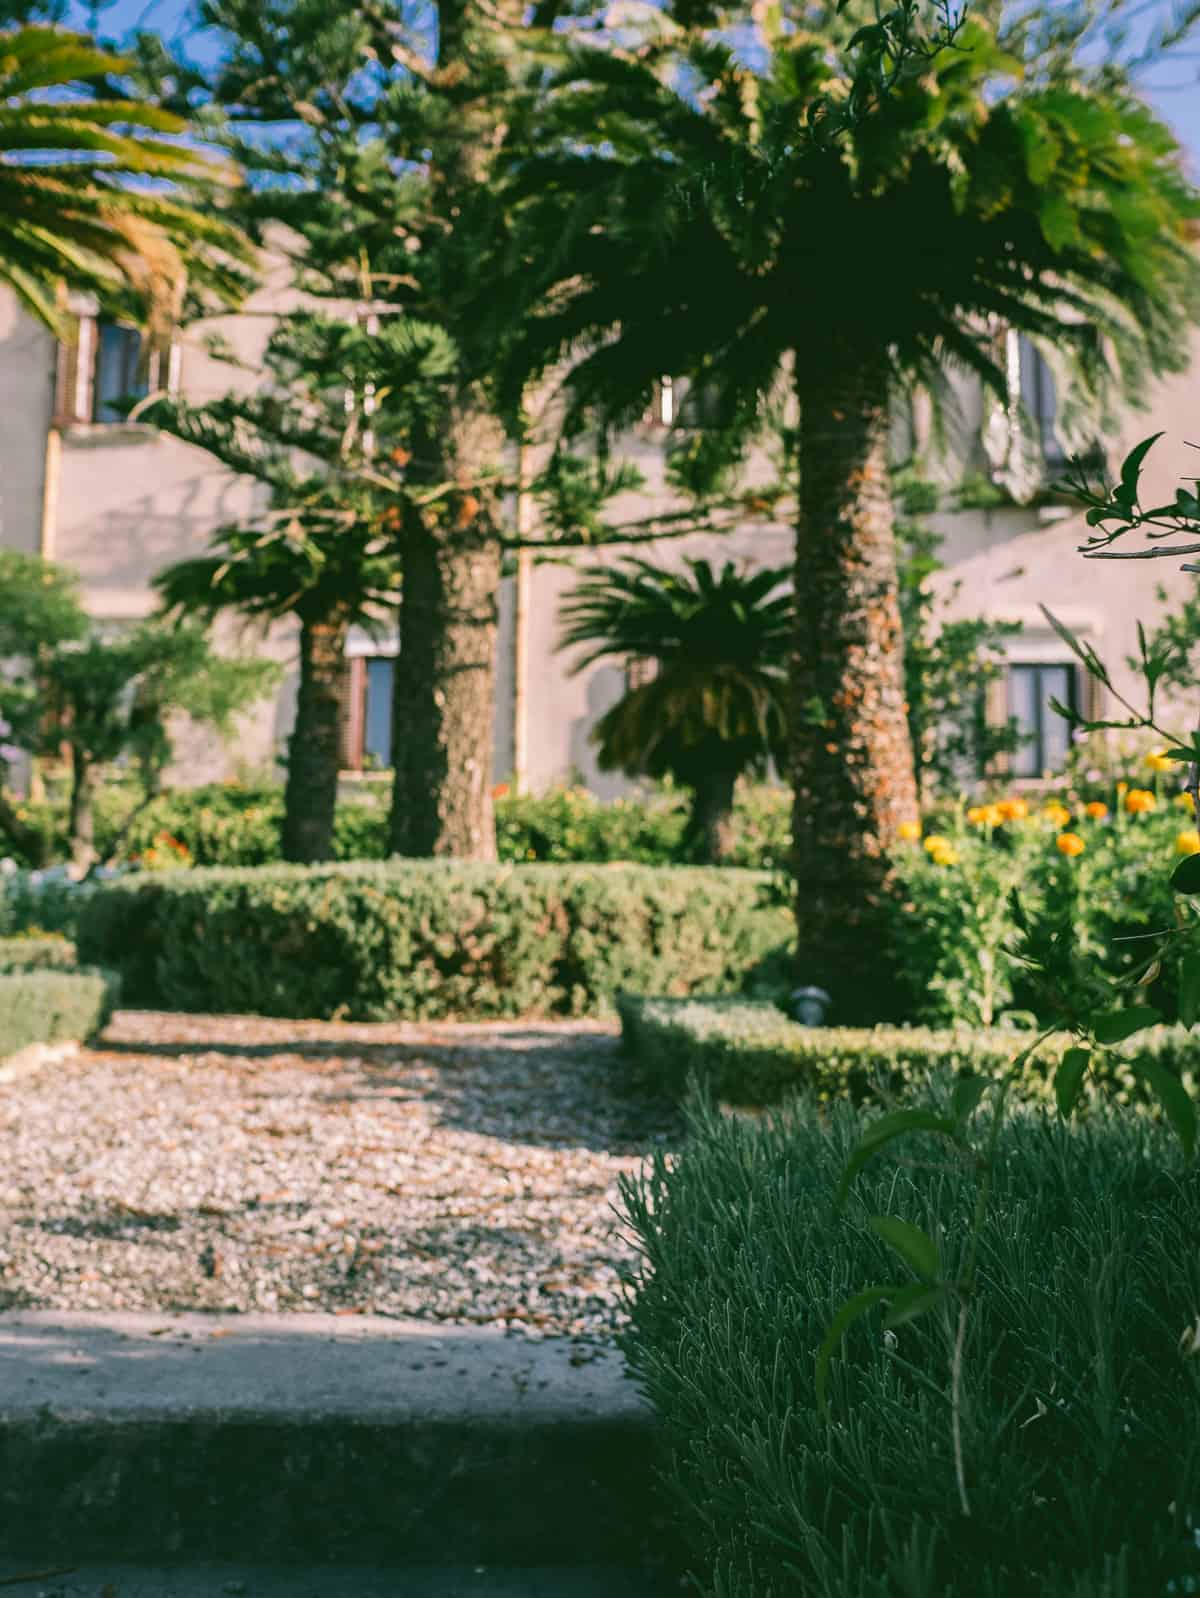 the gardens and grounds of the San Domenico Palace Hotel Taormina Sicily